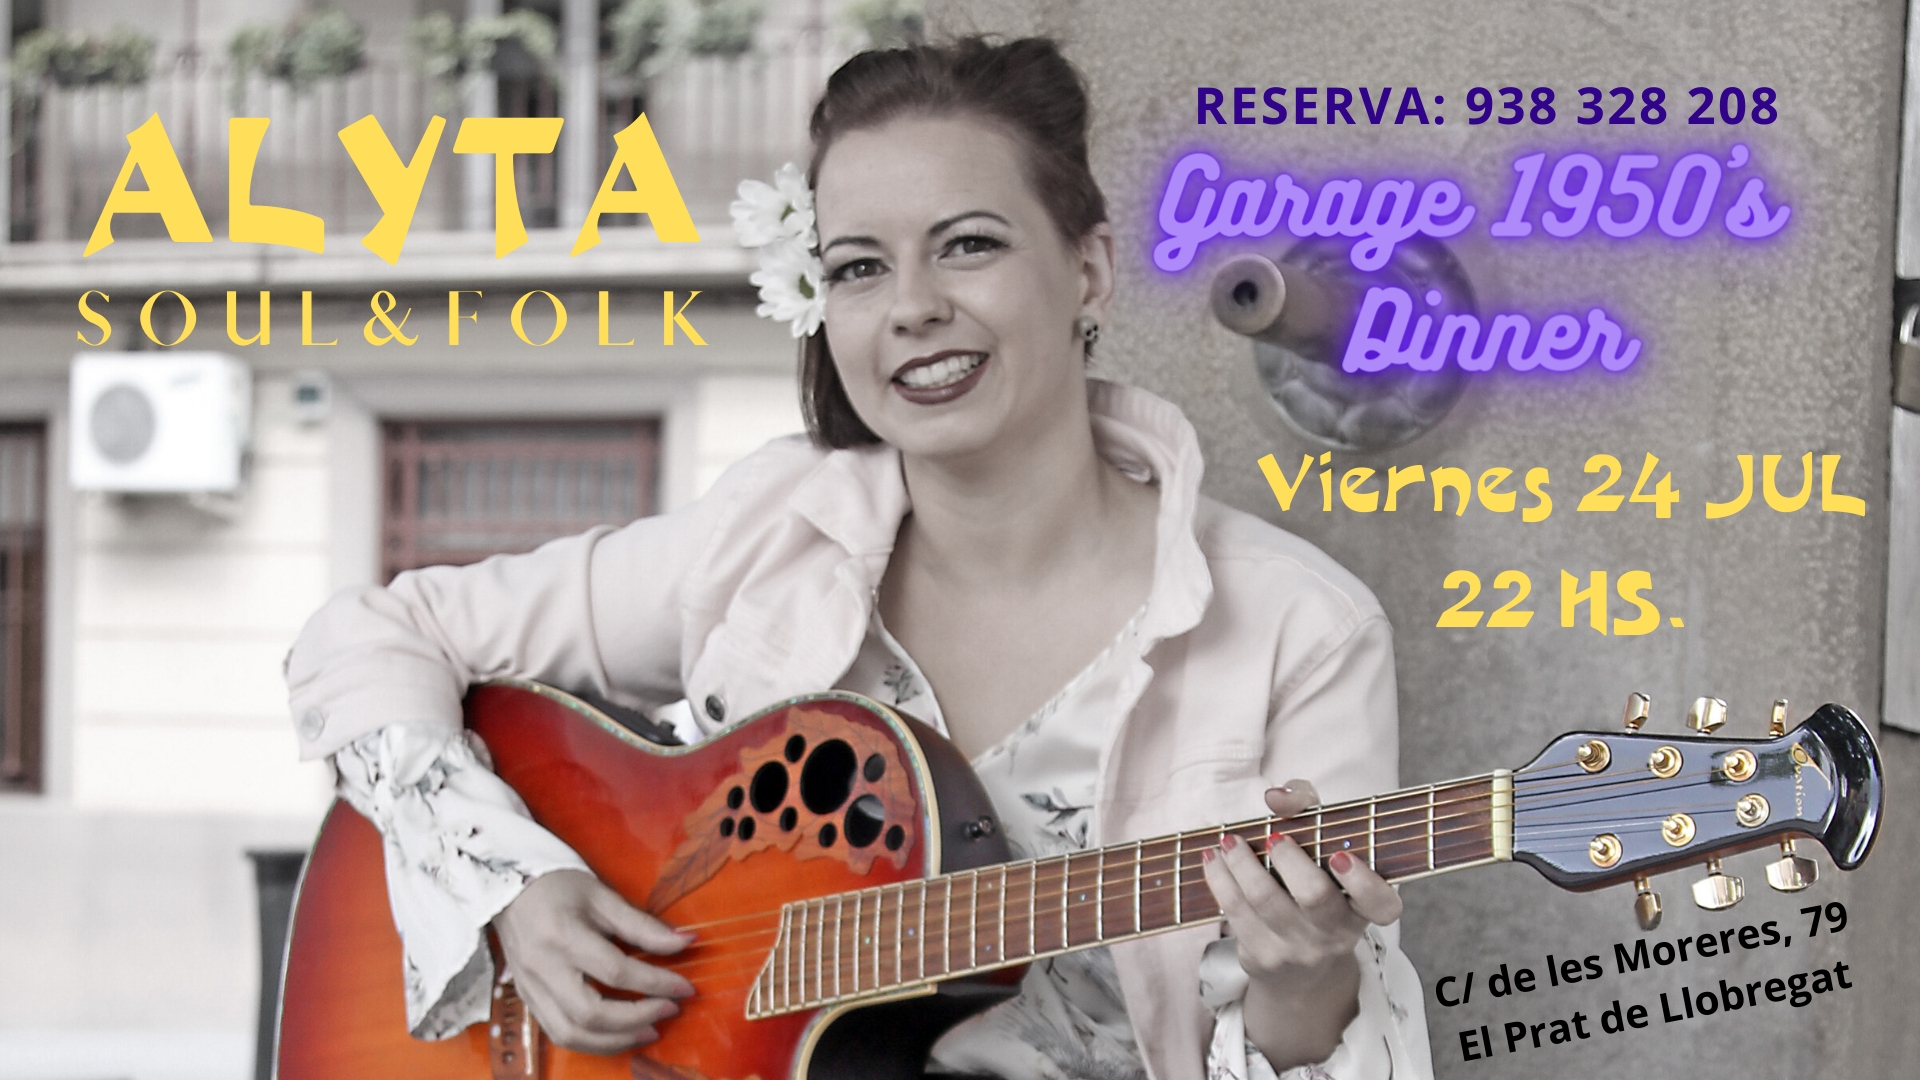 Cartel Alyta:Soul&Folk en Garage1950s Dinner